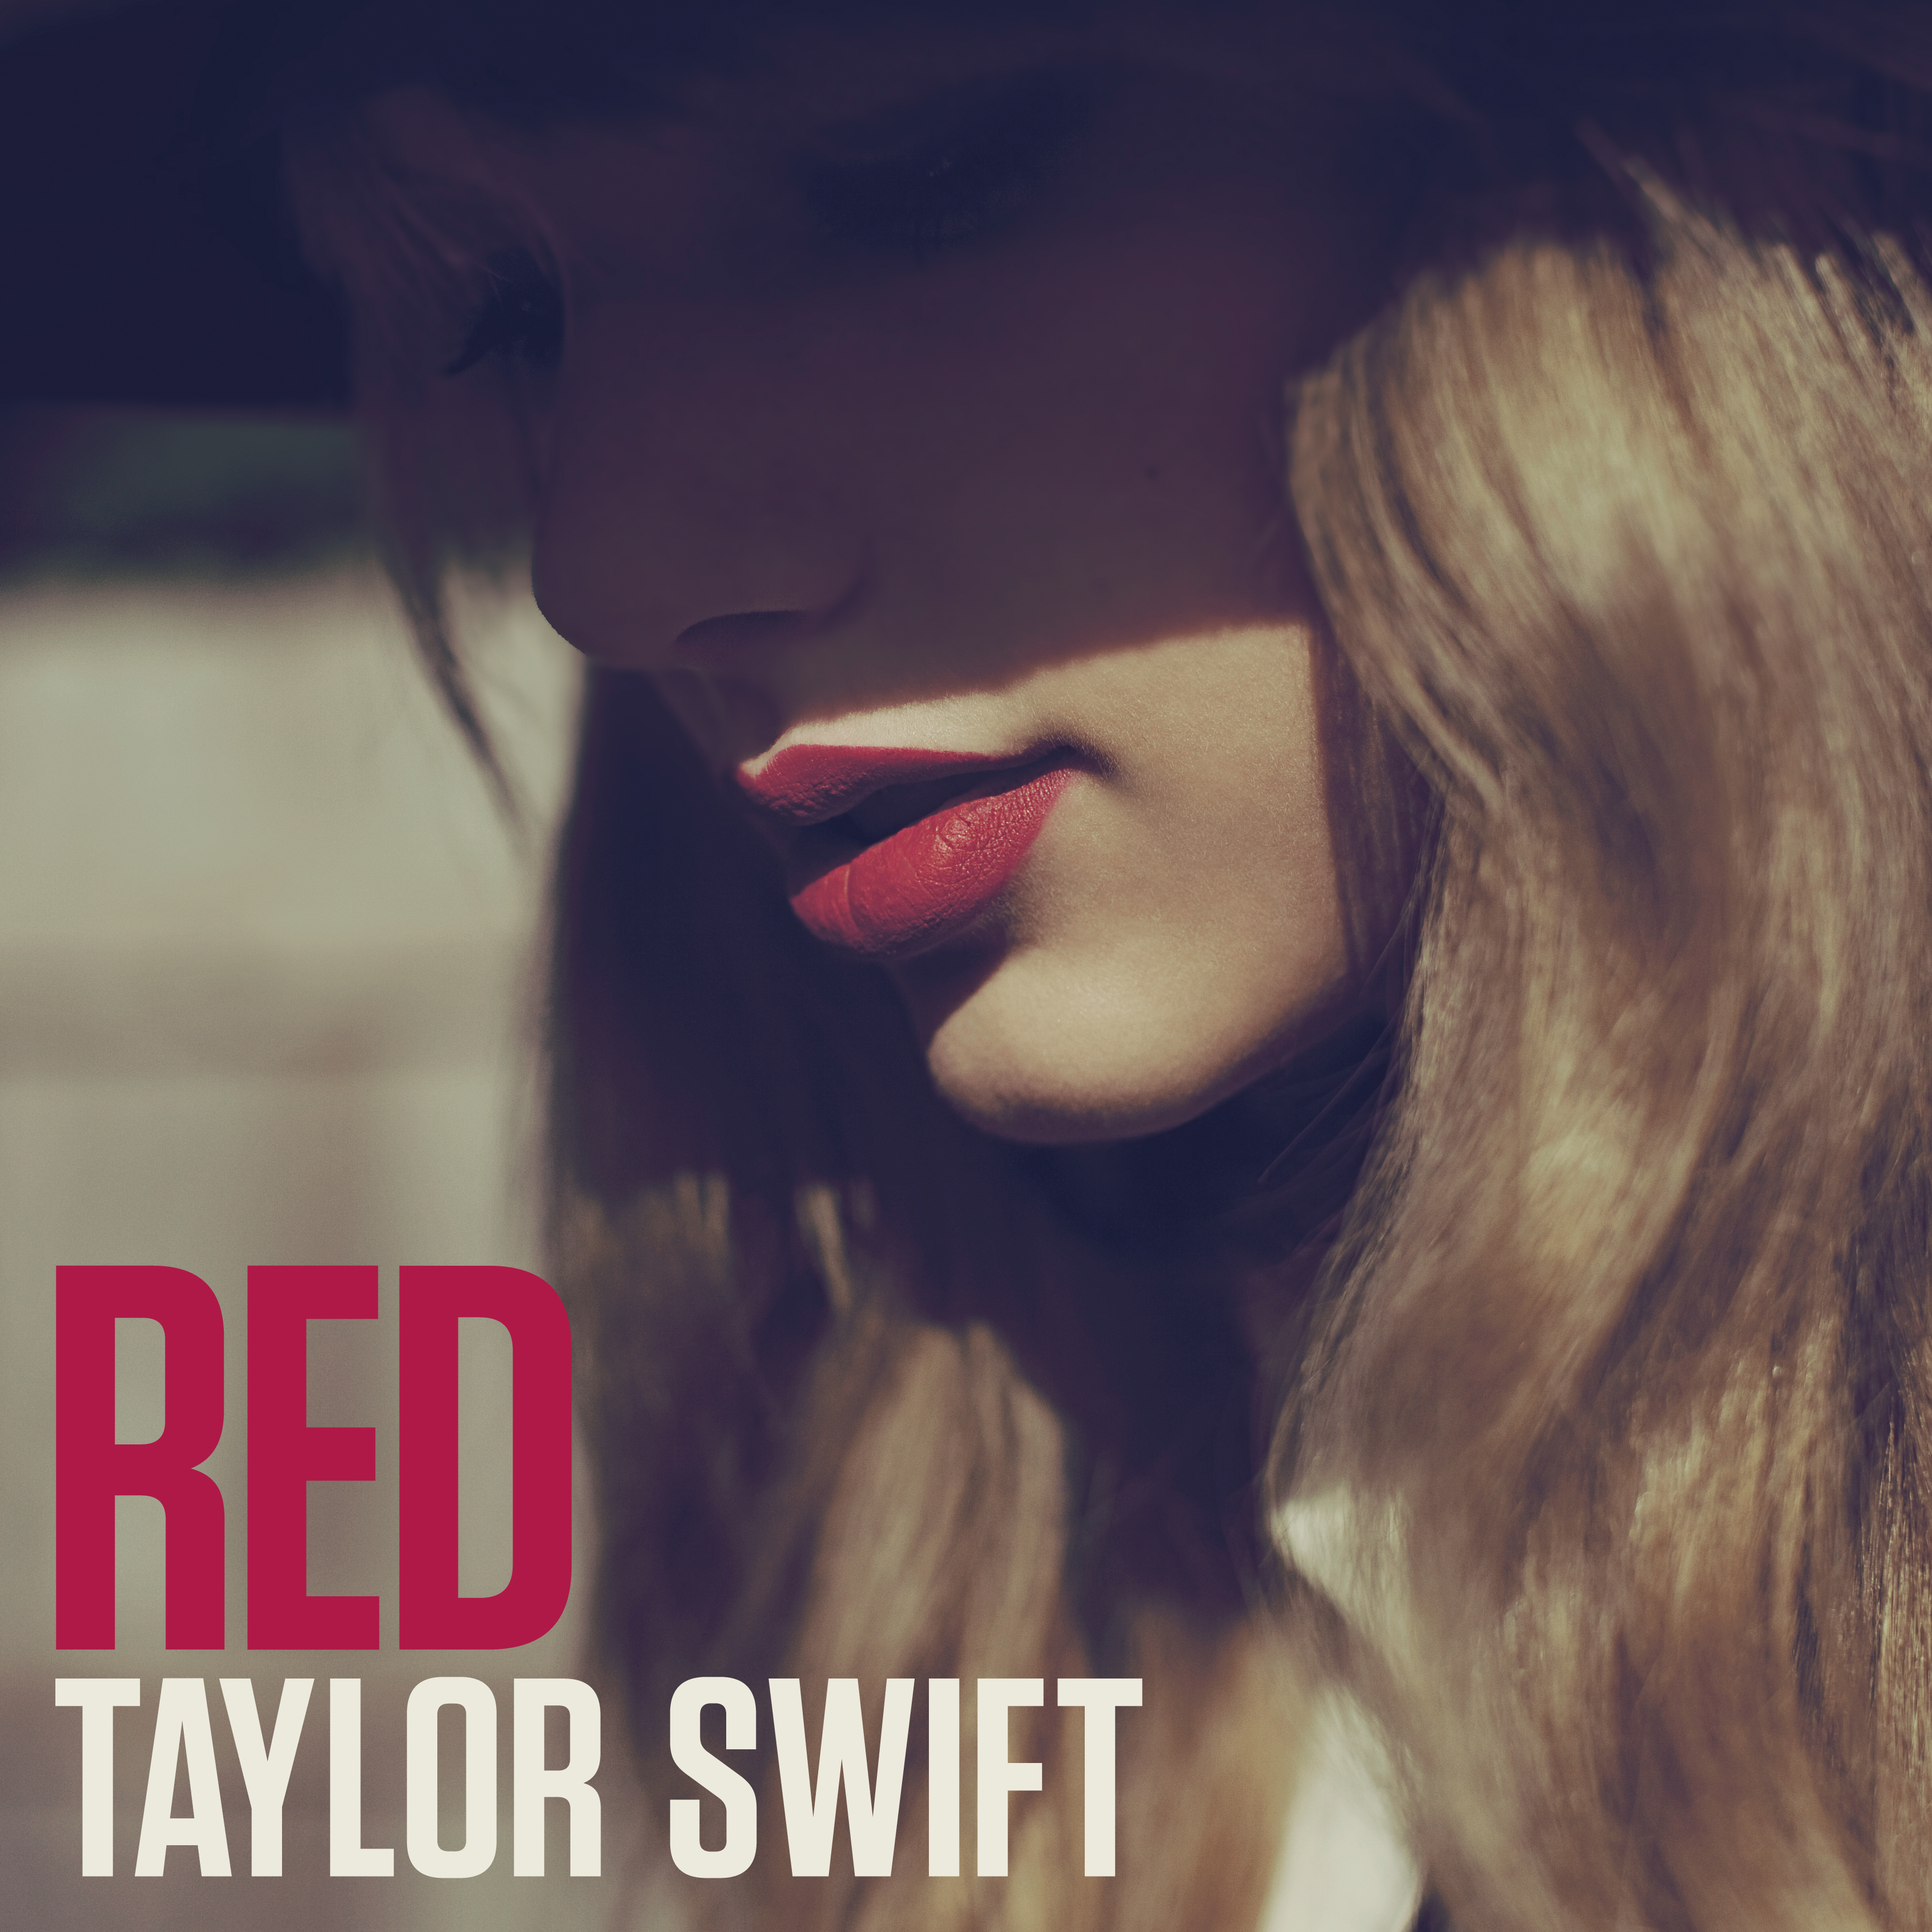 Taylor Swift Smoking Weed Red by taylor swift